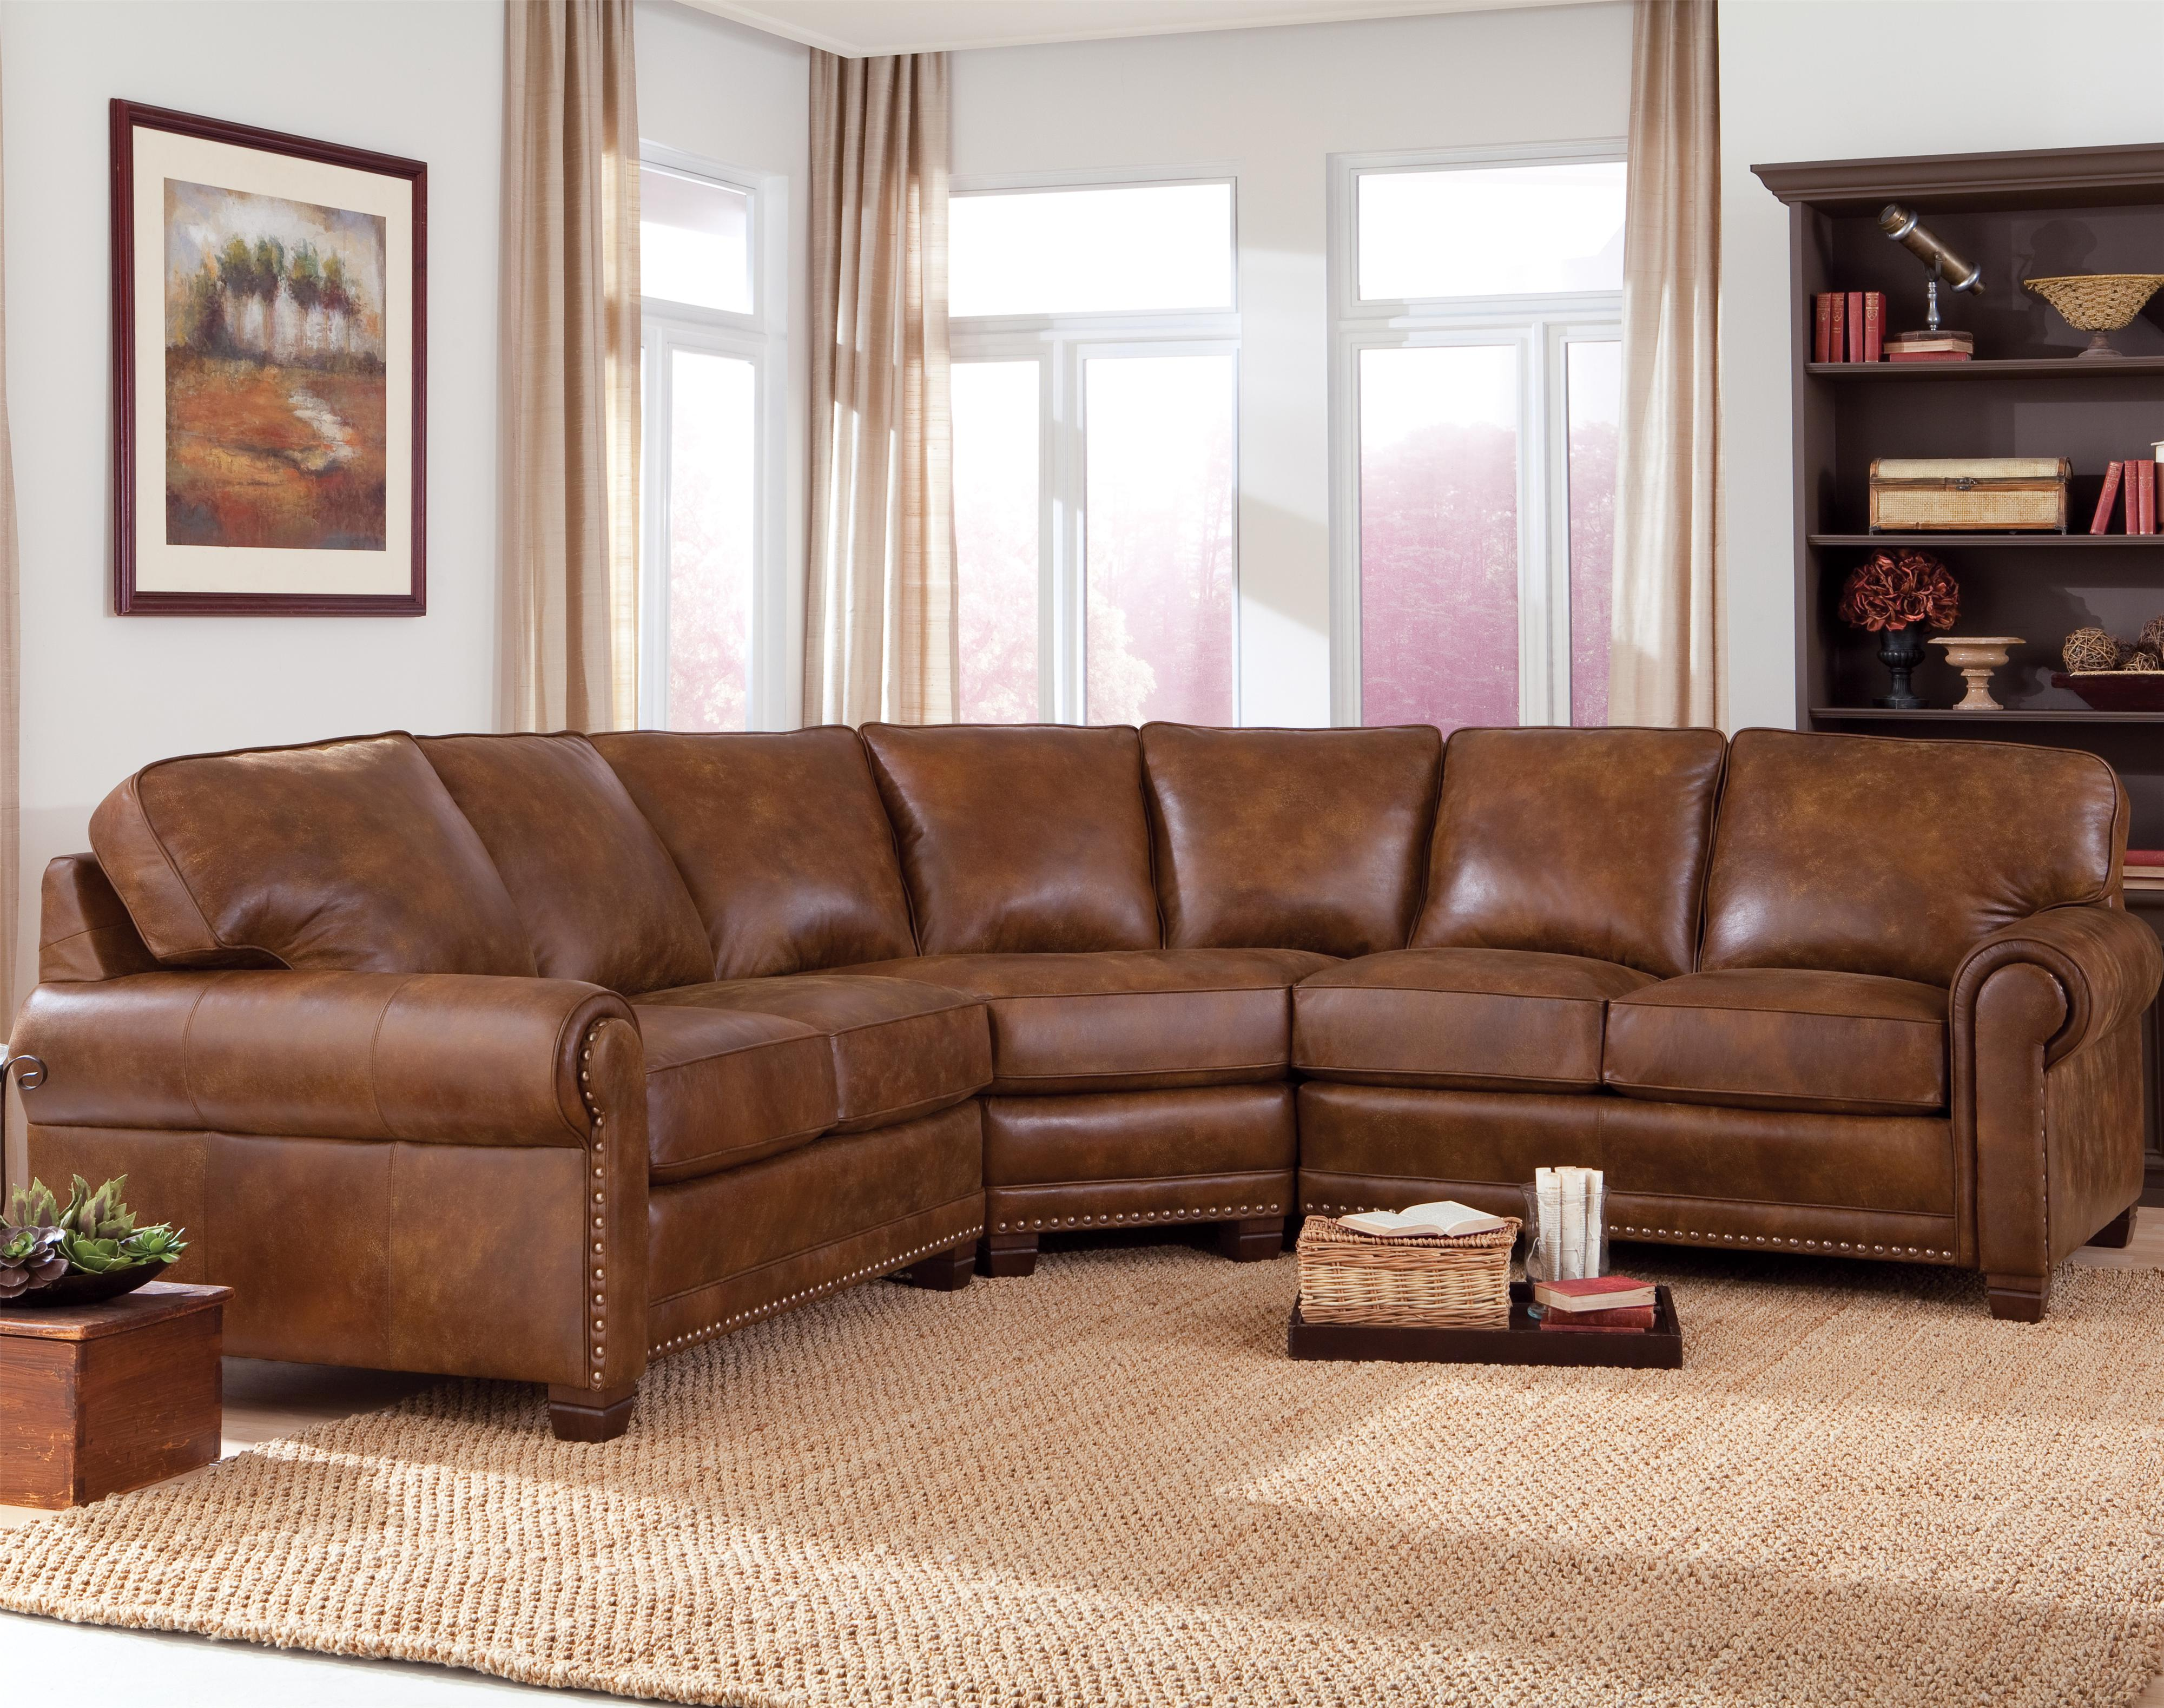 393 Sectional by Smith Brothers at Turk Furniture